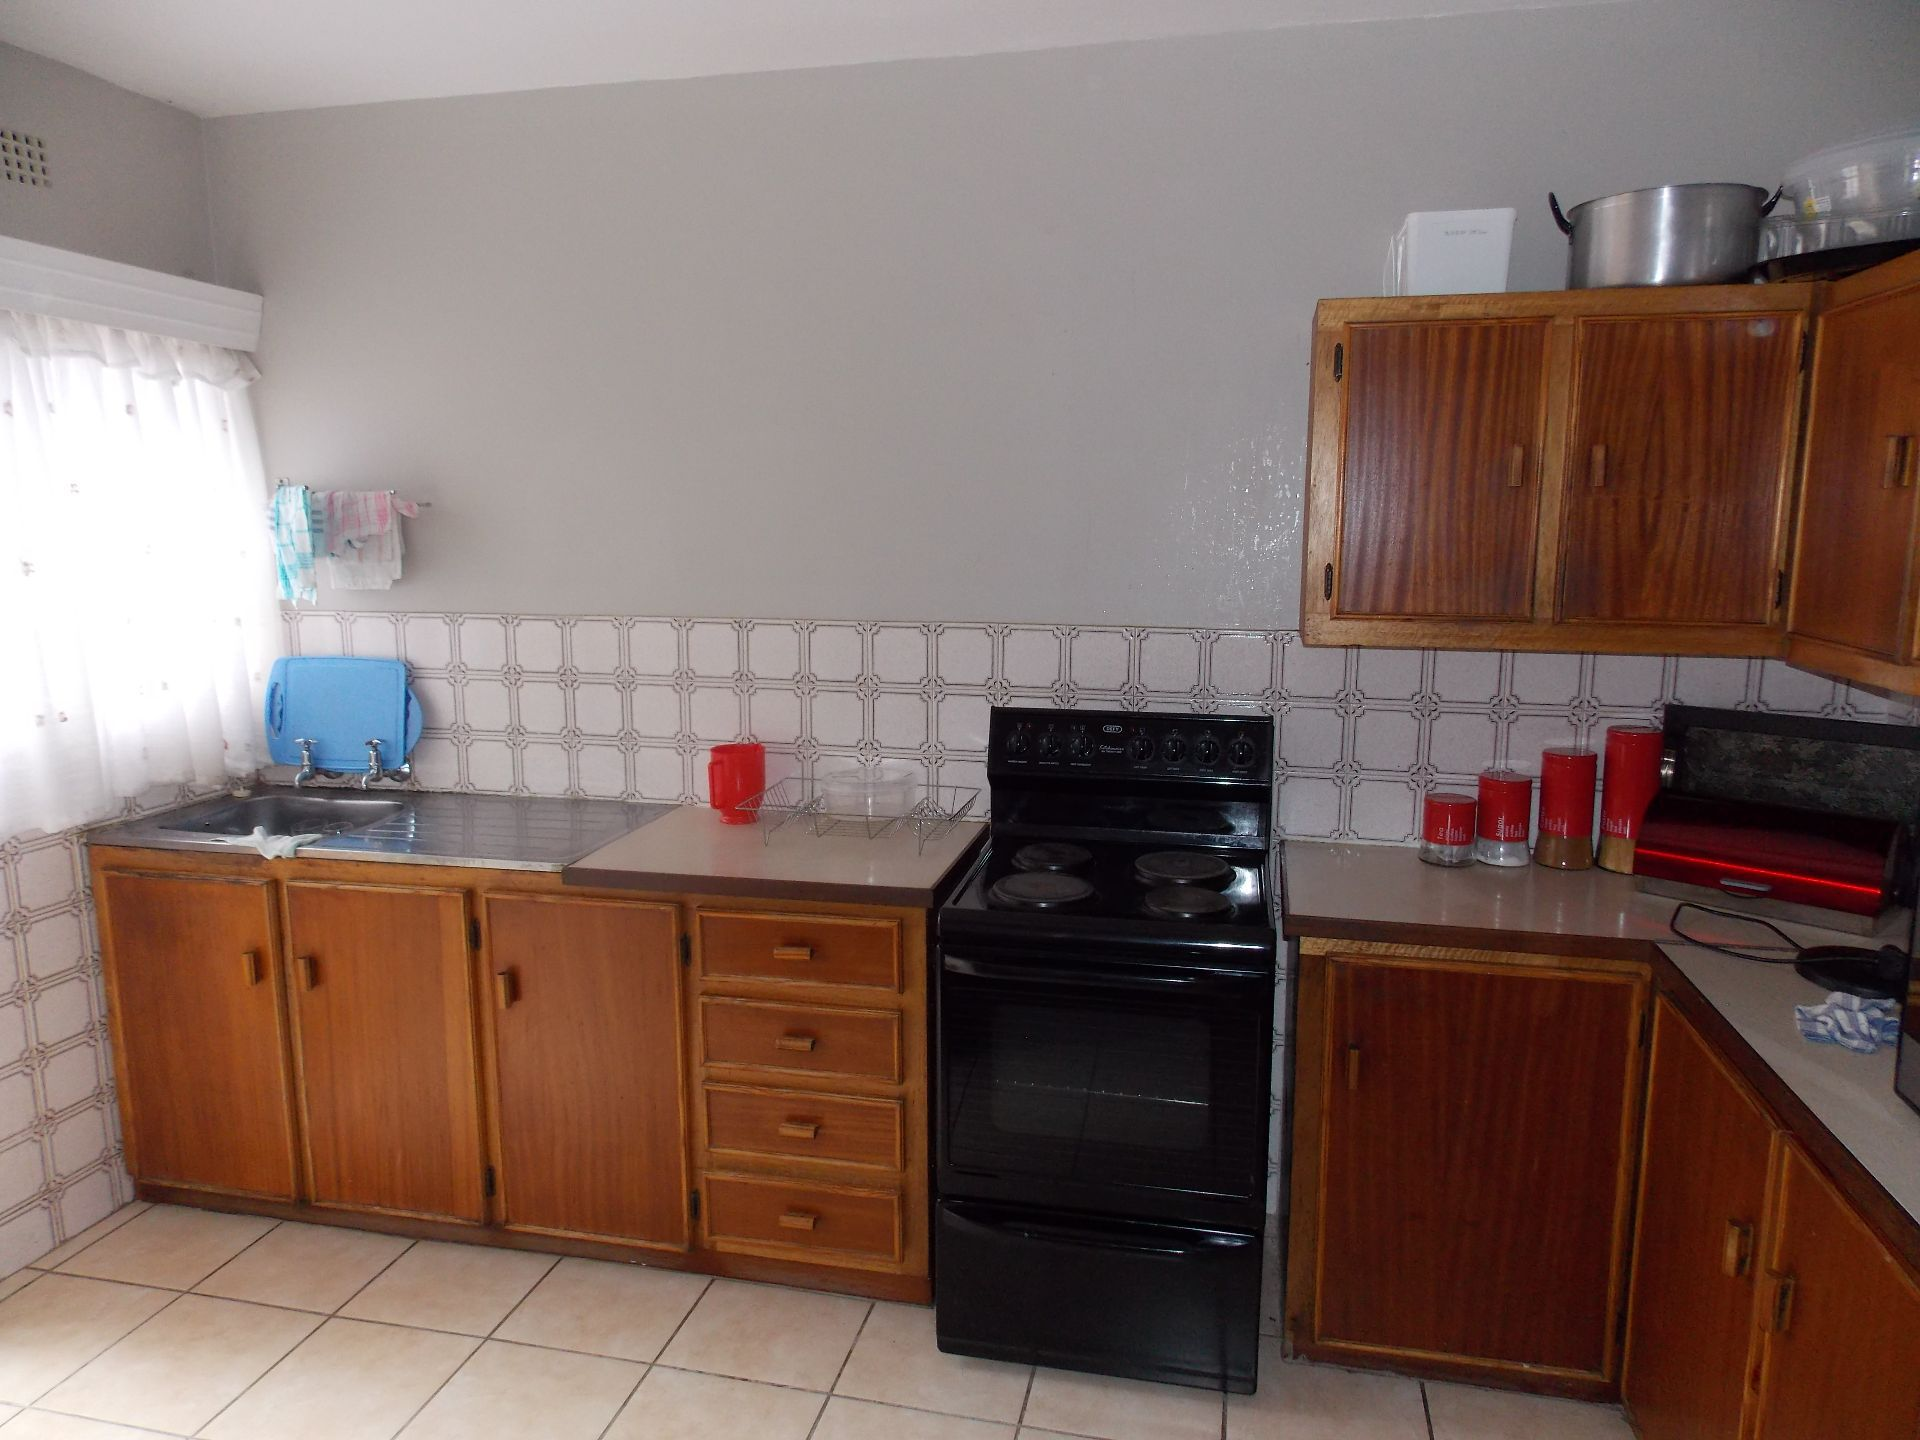 Potchefstroom Central property for sale. Ref No: 13449640. Picture no 4